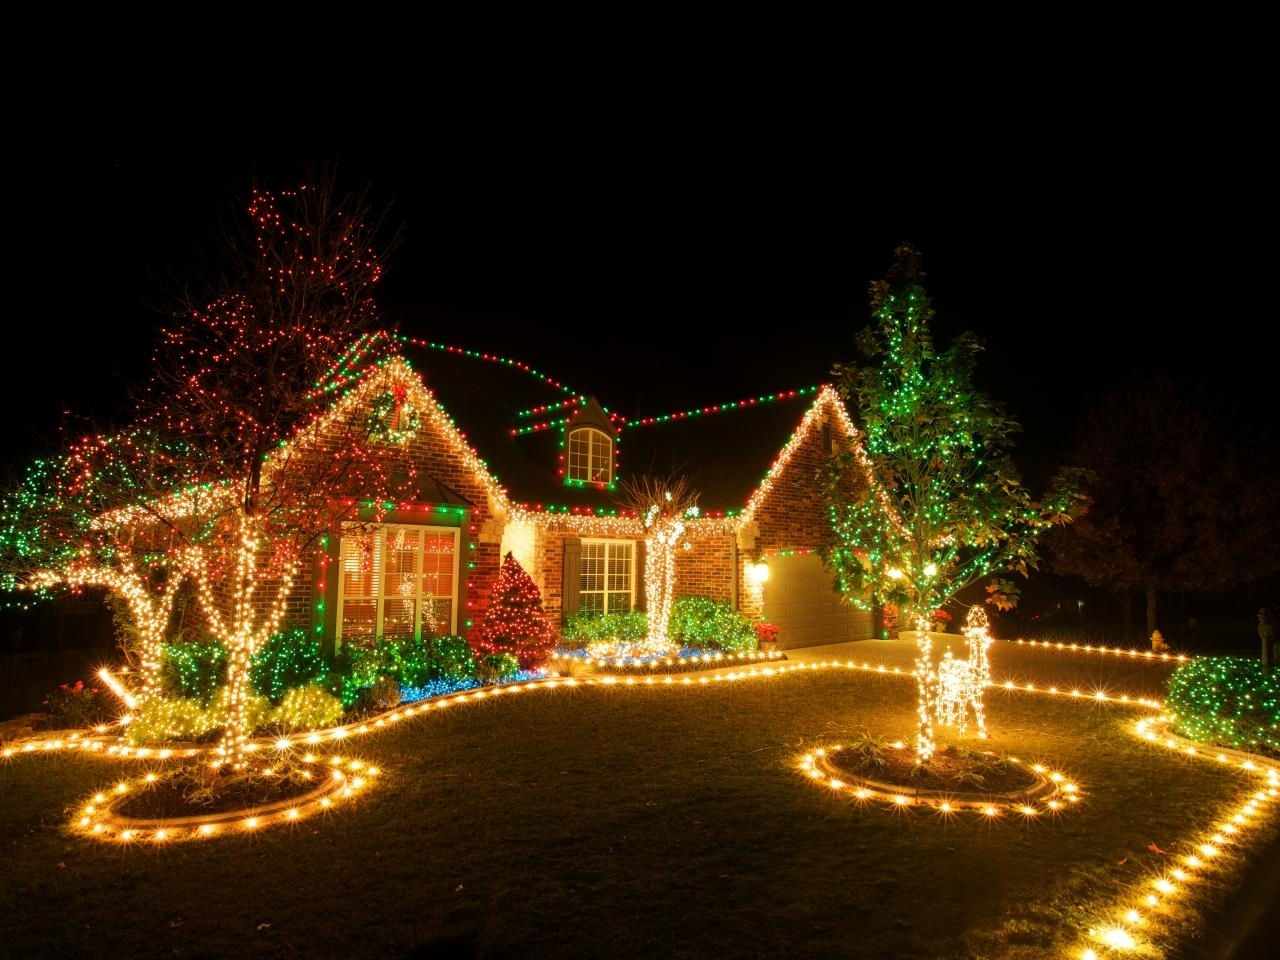 Hang Outdoor Christmas Lights : 6 Tips For Outdoor Christmas Lights Pertaining To Outdoor Hanging Xmas Lights (View 4 of 15)